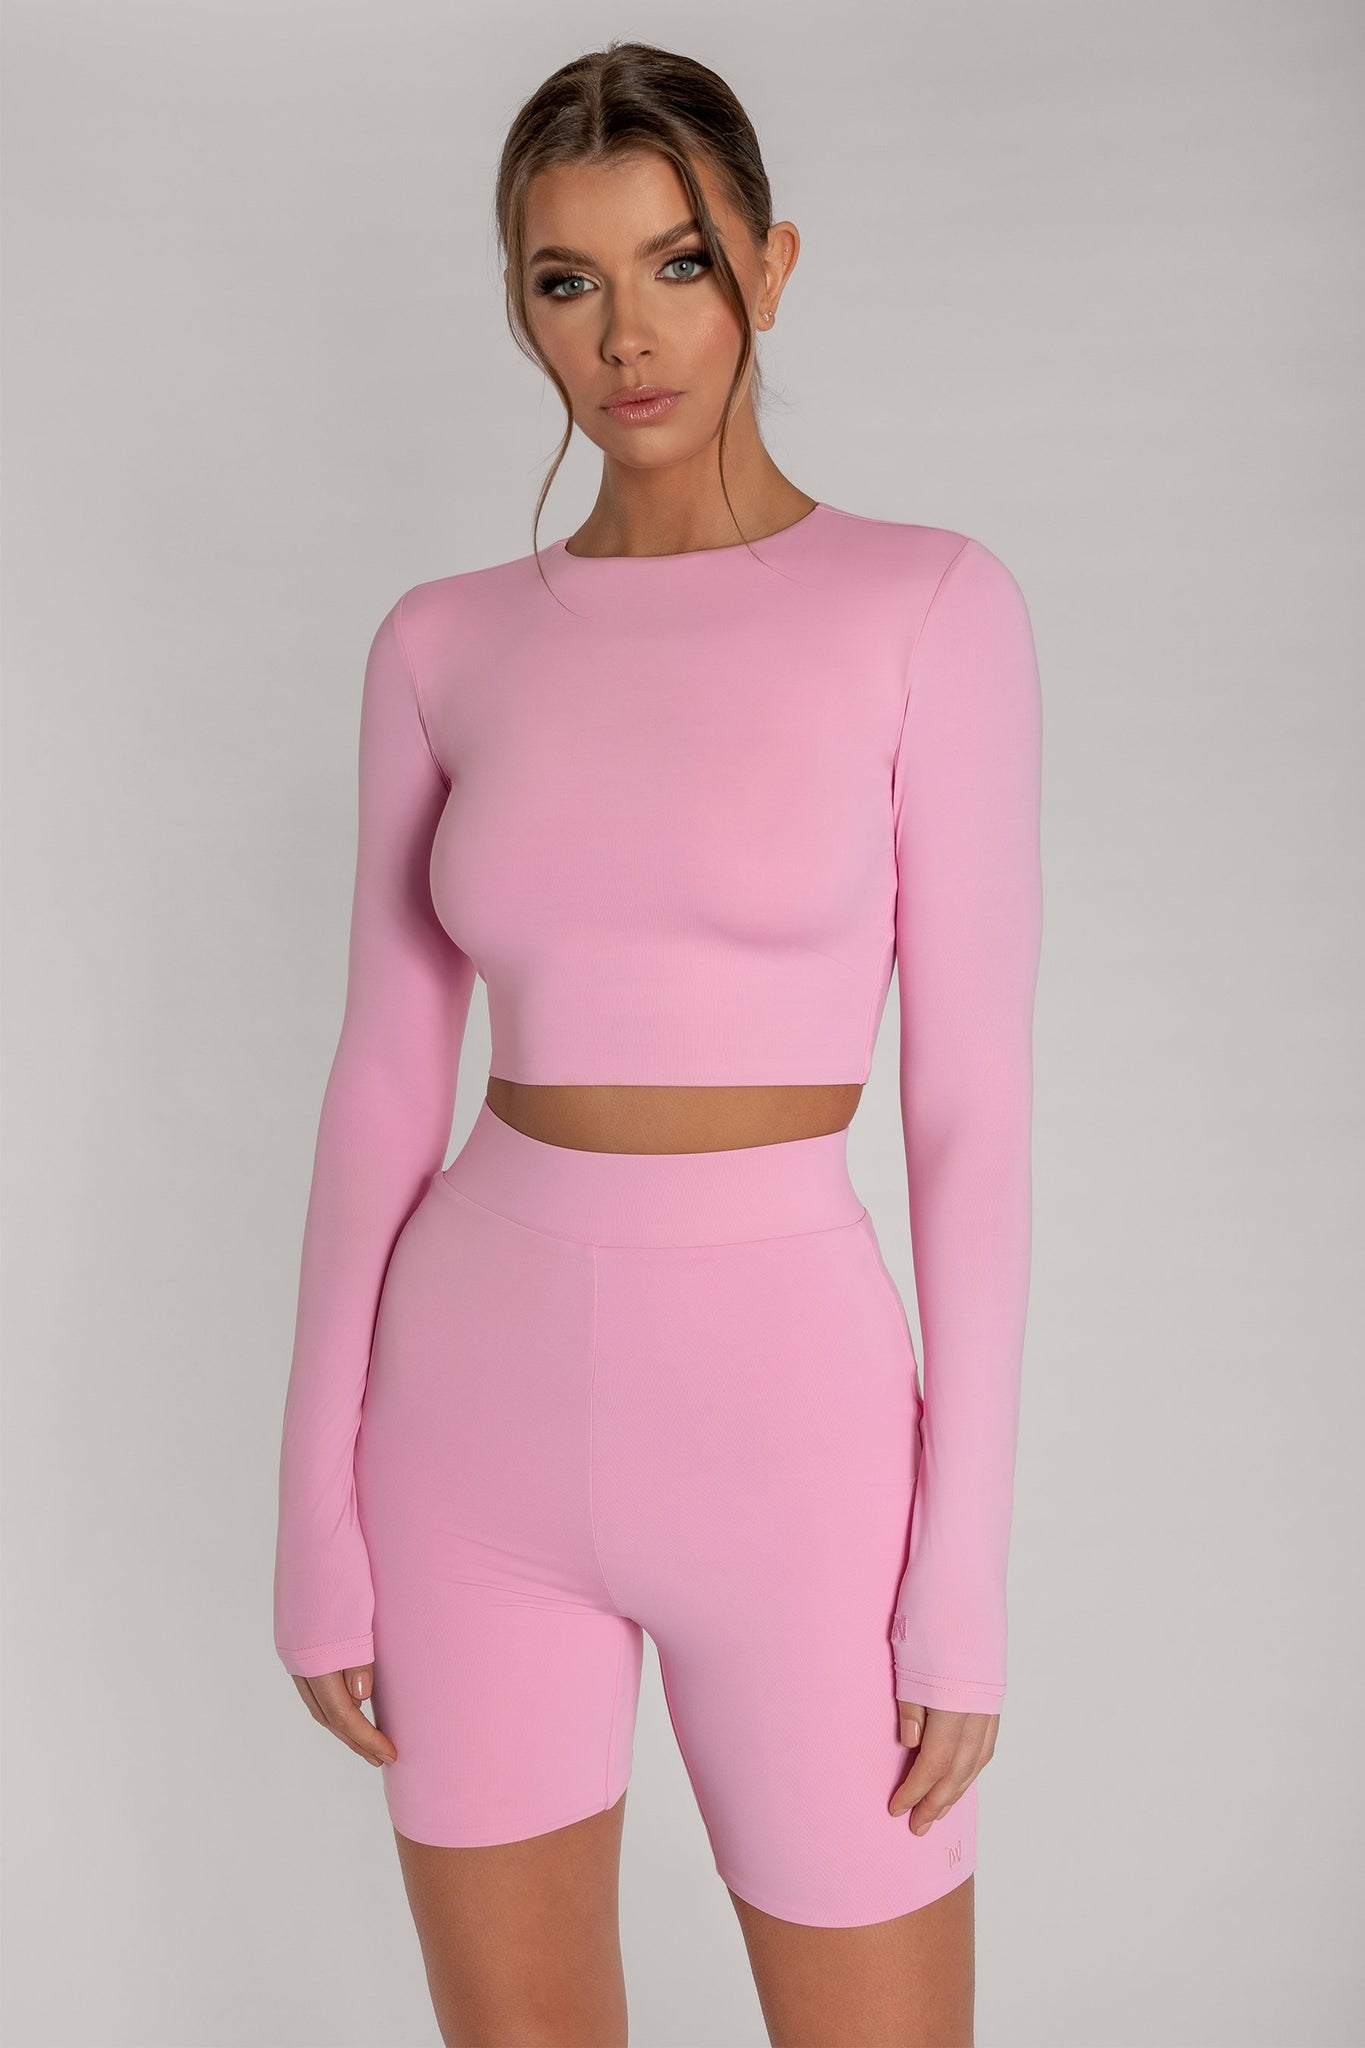 Emely Long Sleeve Crop Top - Pink - MESHKI